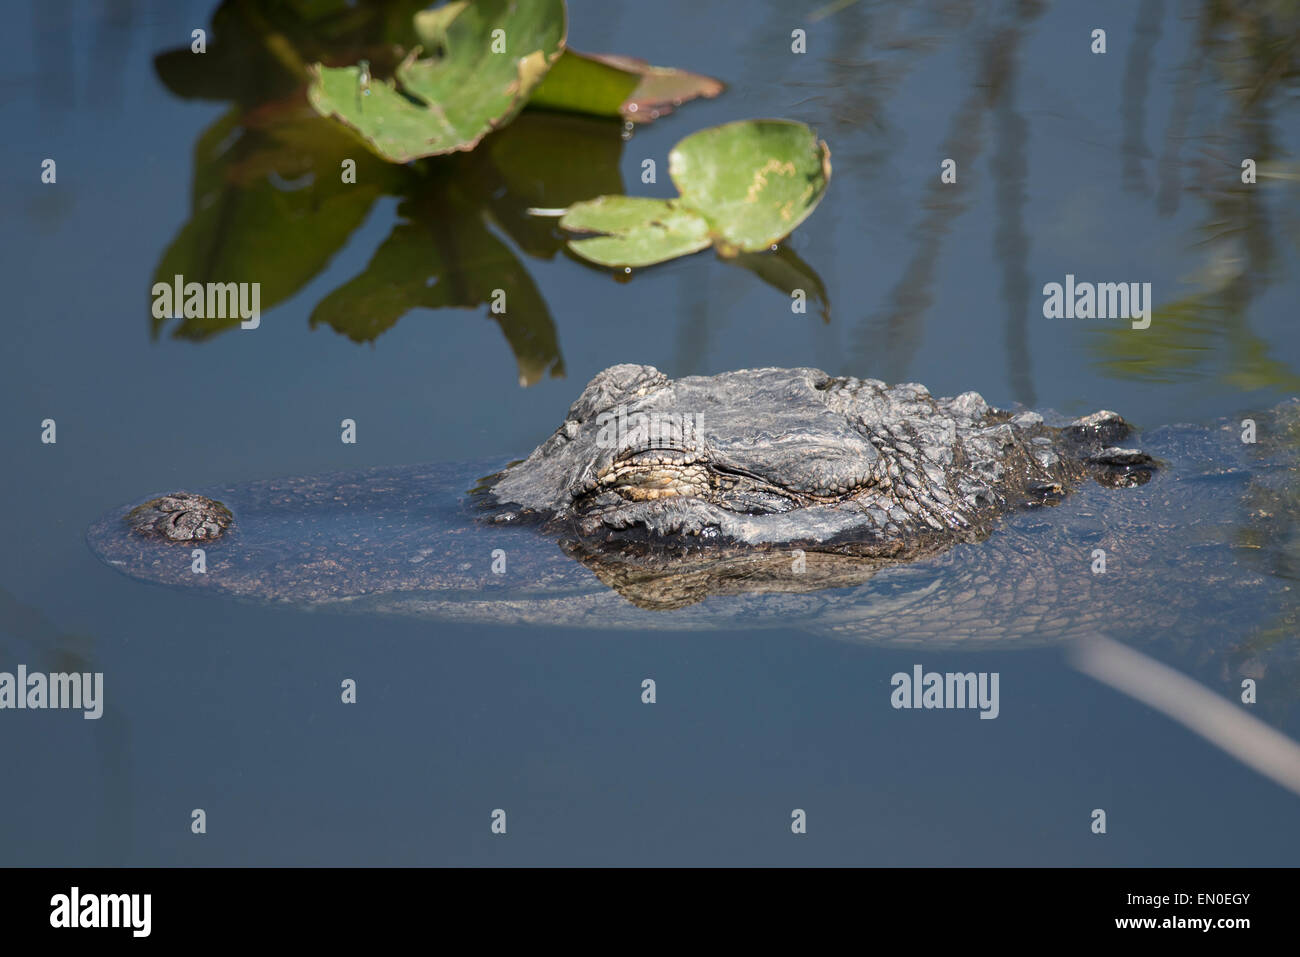 An alligator snoozes in the water - Stock Image